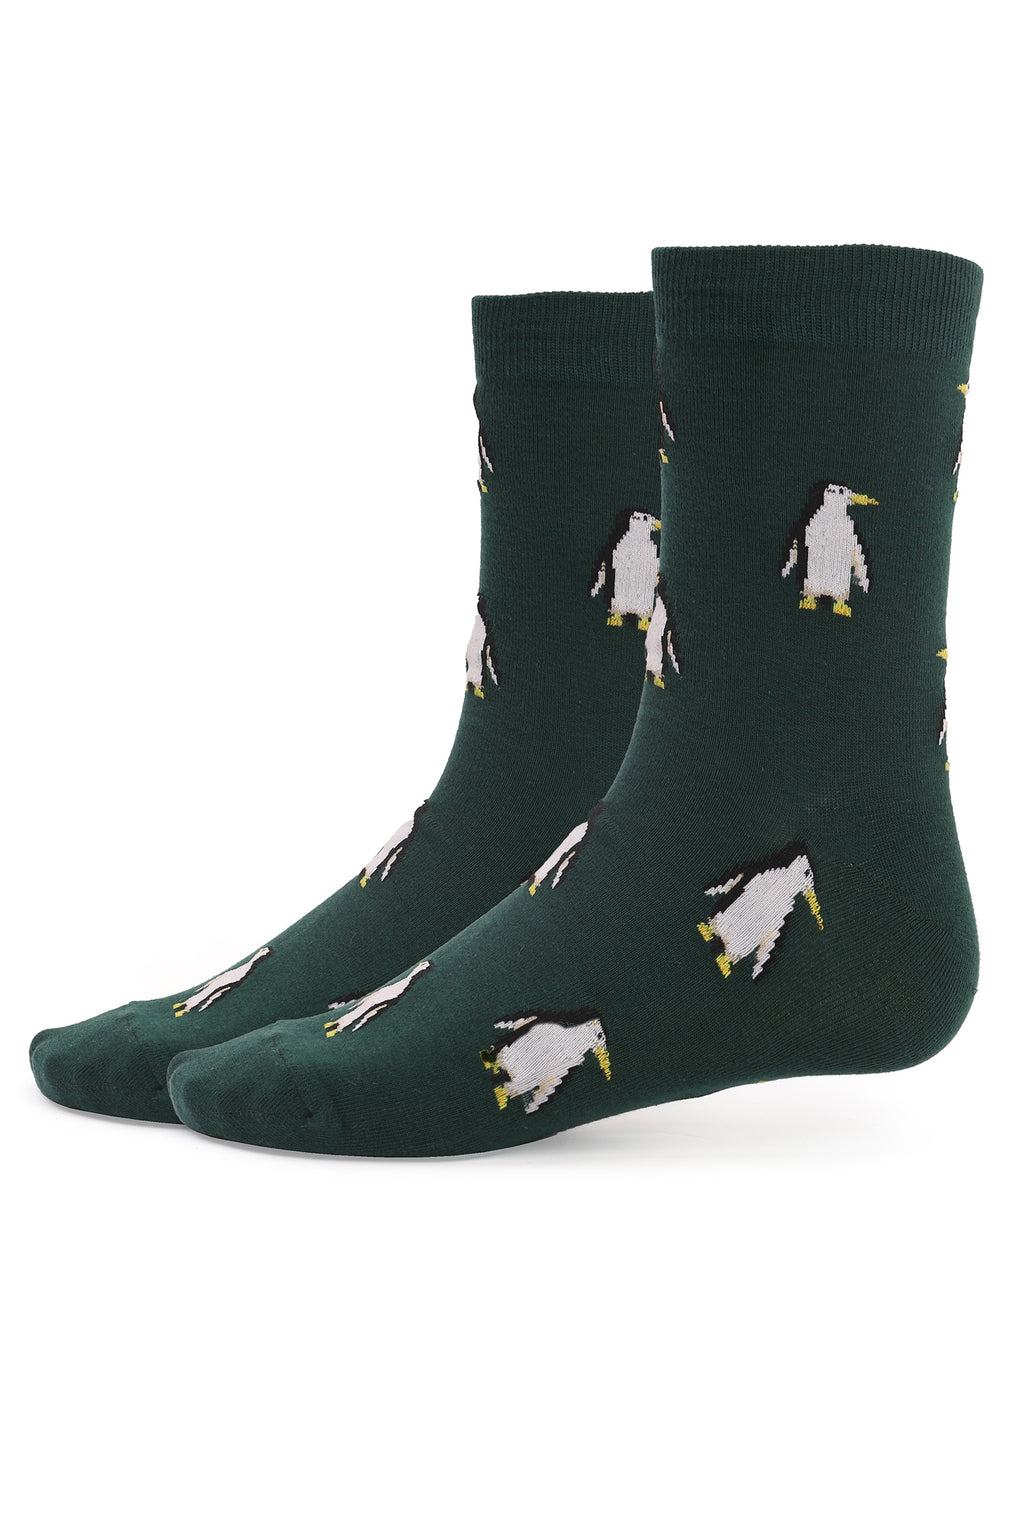 PENGUINE SOCKS-GREEN-WHITE